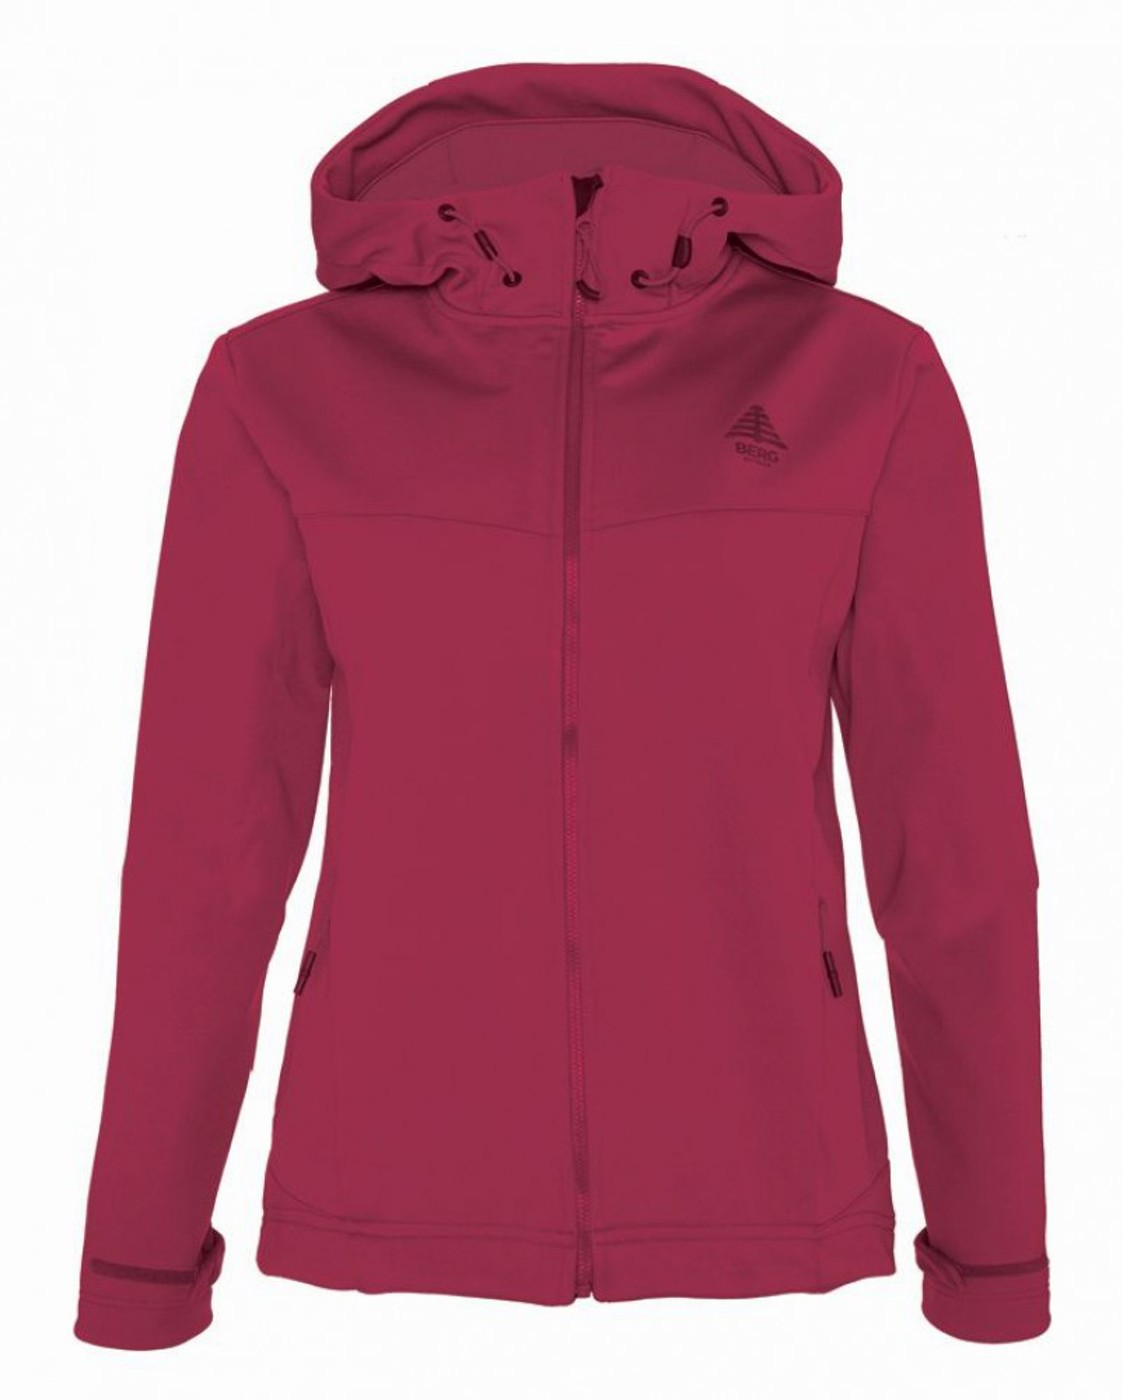 BERG Softshell Jacket MONTESINHO - Damen